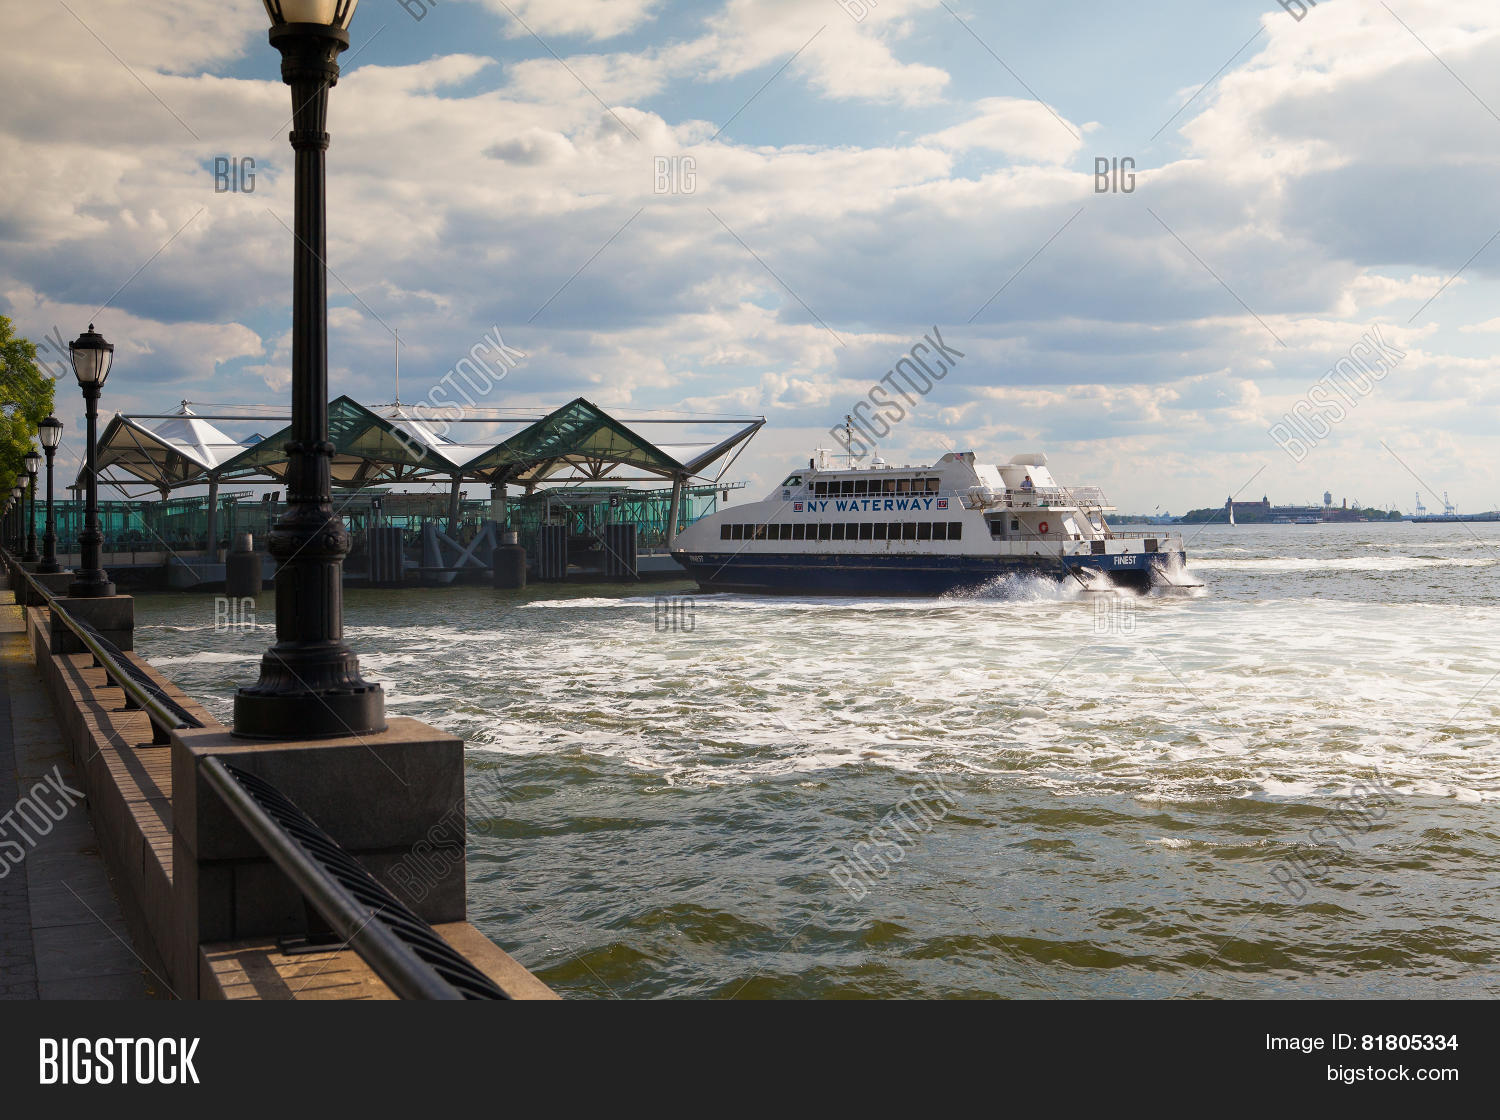 an analysis of the ferry near battery park Mla format irma and paul milstein division of united states history, local history and genealogy, the new york public library manhattan: battery park fountain near ellis island ferry house.